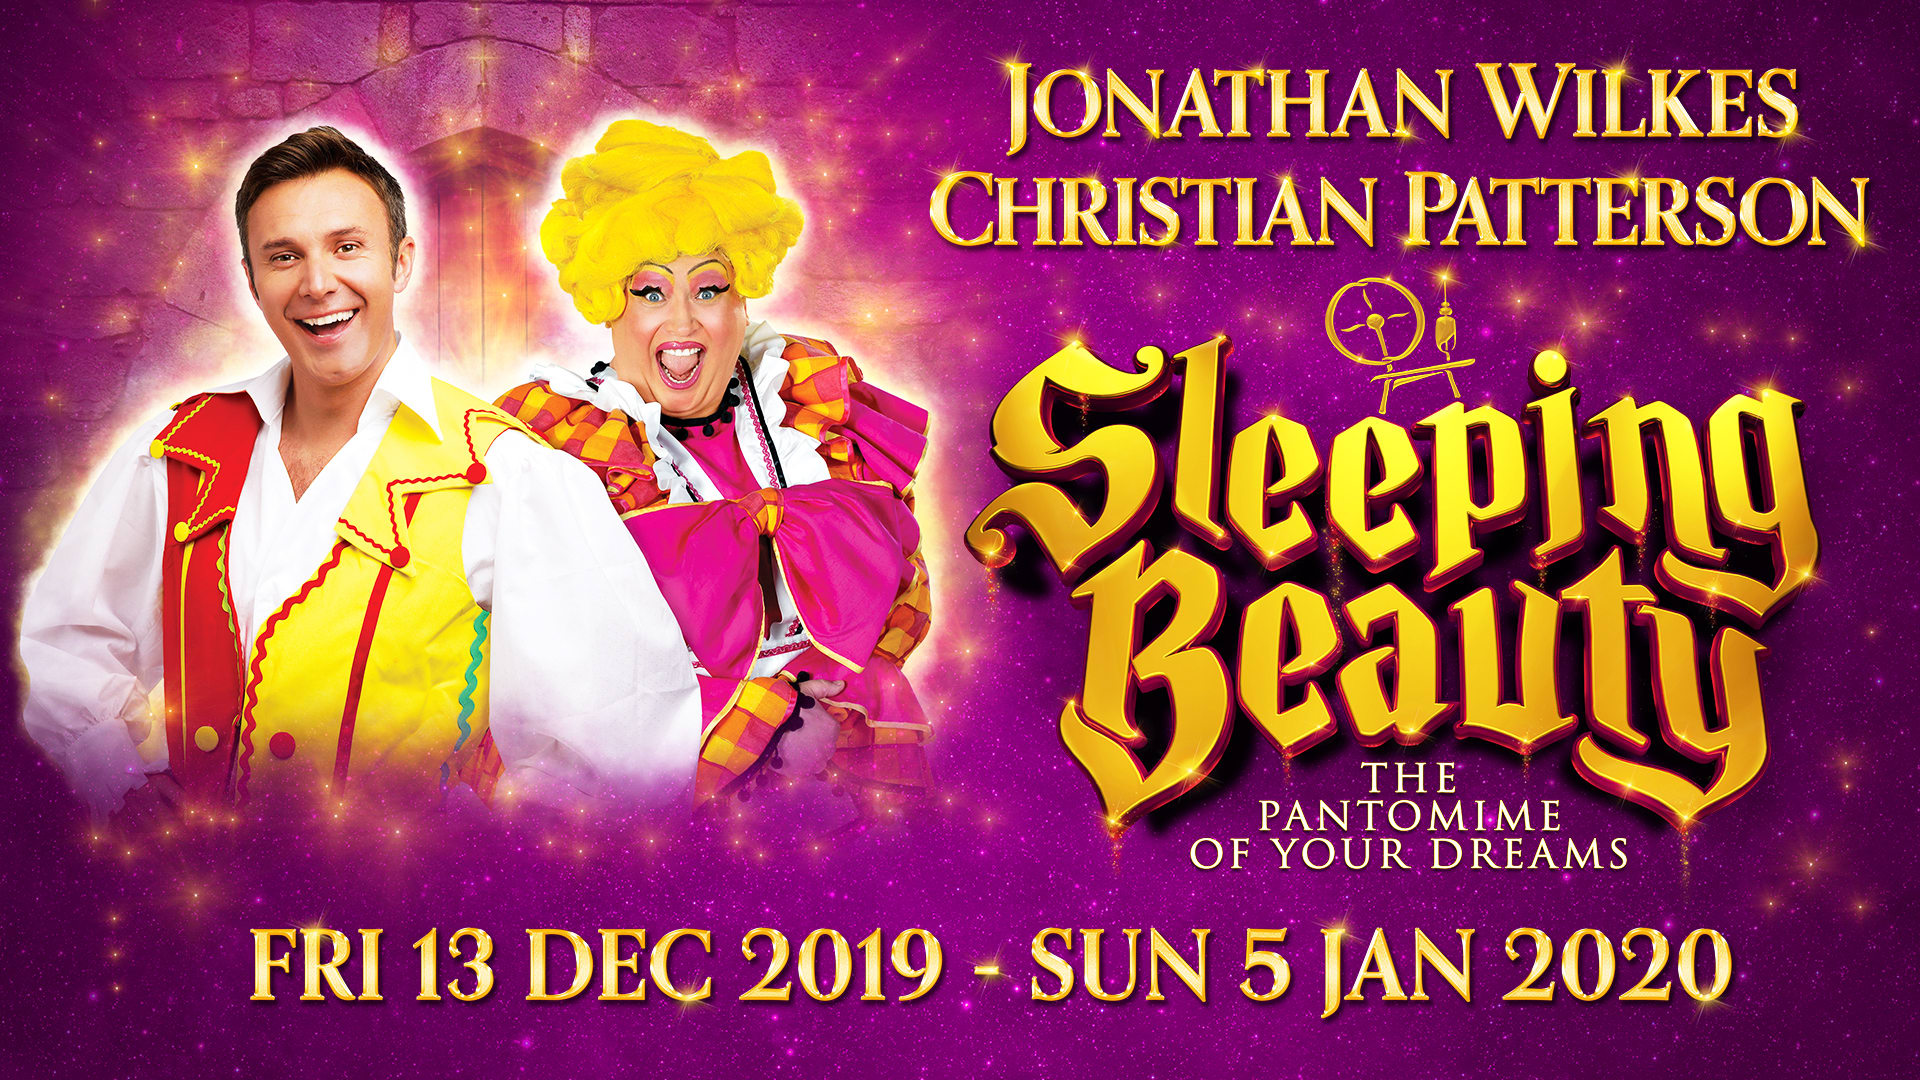 Sleeping Beauty at Regent Theatre, Stoke